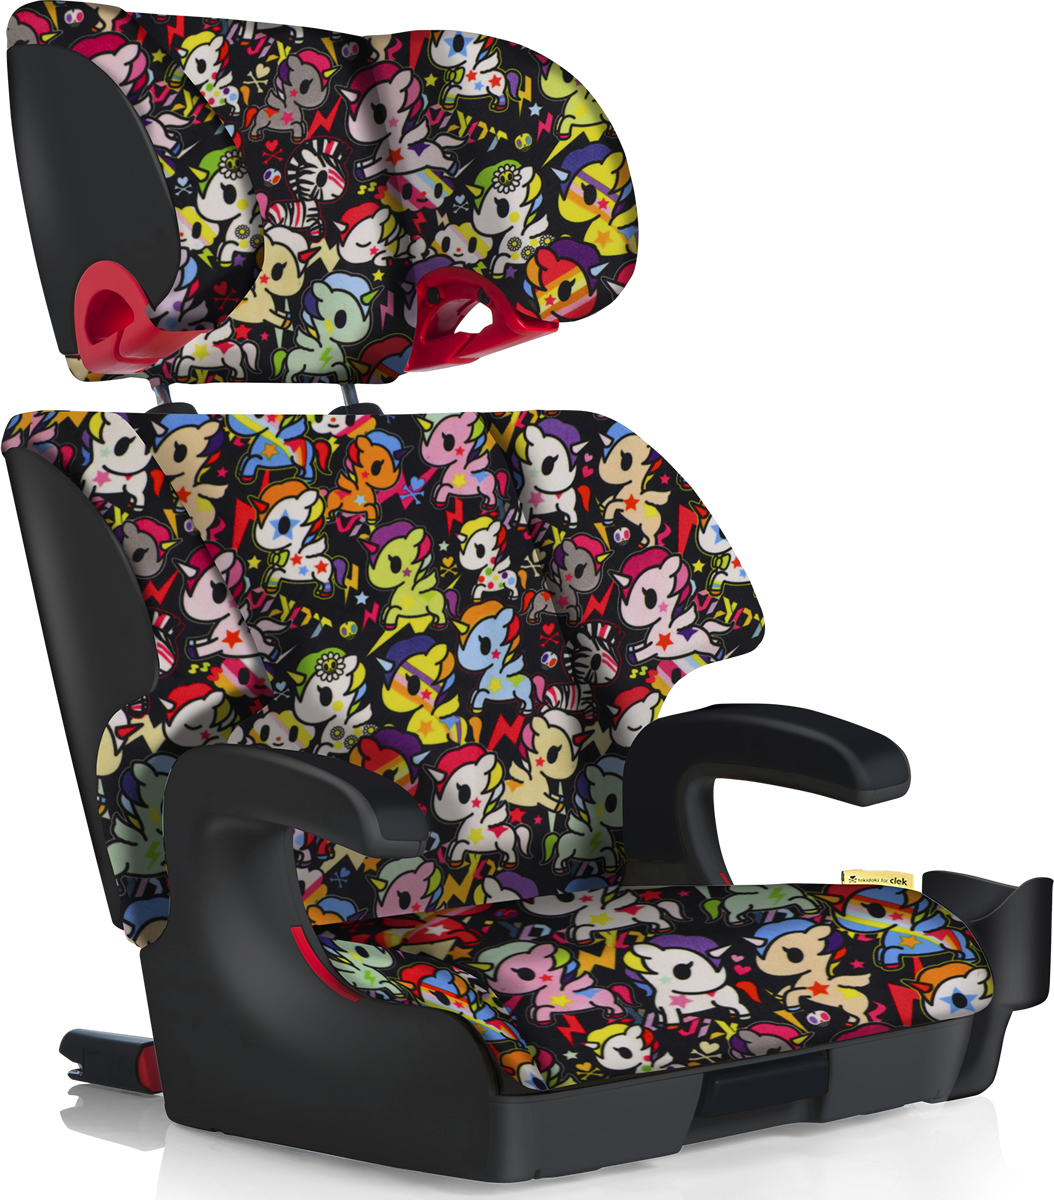 clek oobr booster car seat tokidoki unicorno disco. Black Bedroom Furniture Sets. Home Design Ideas